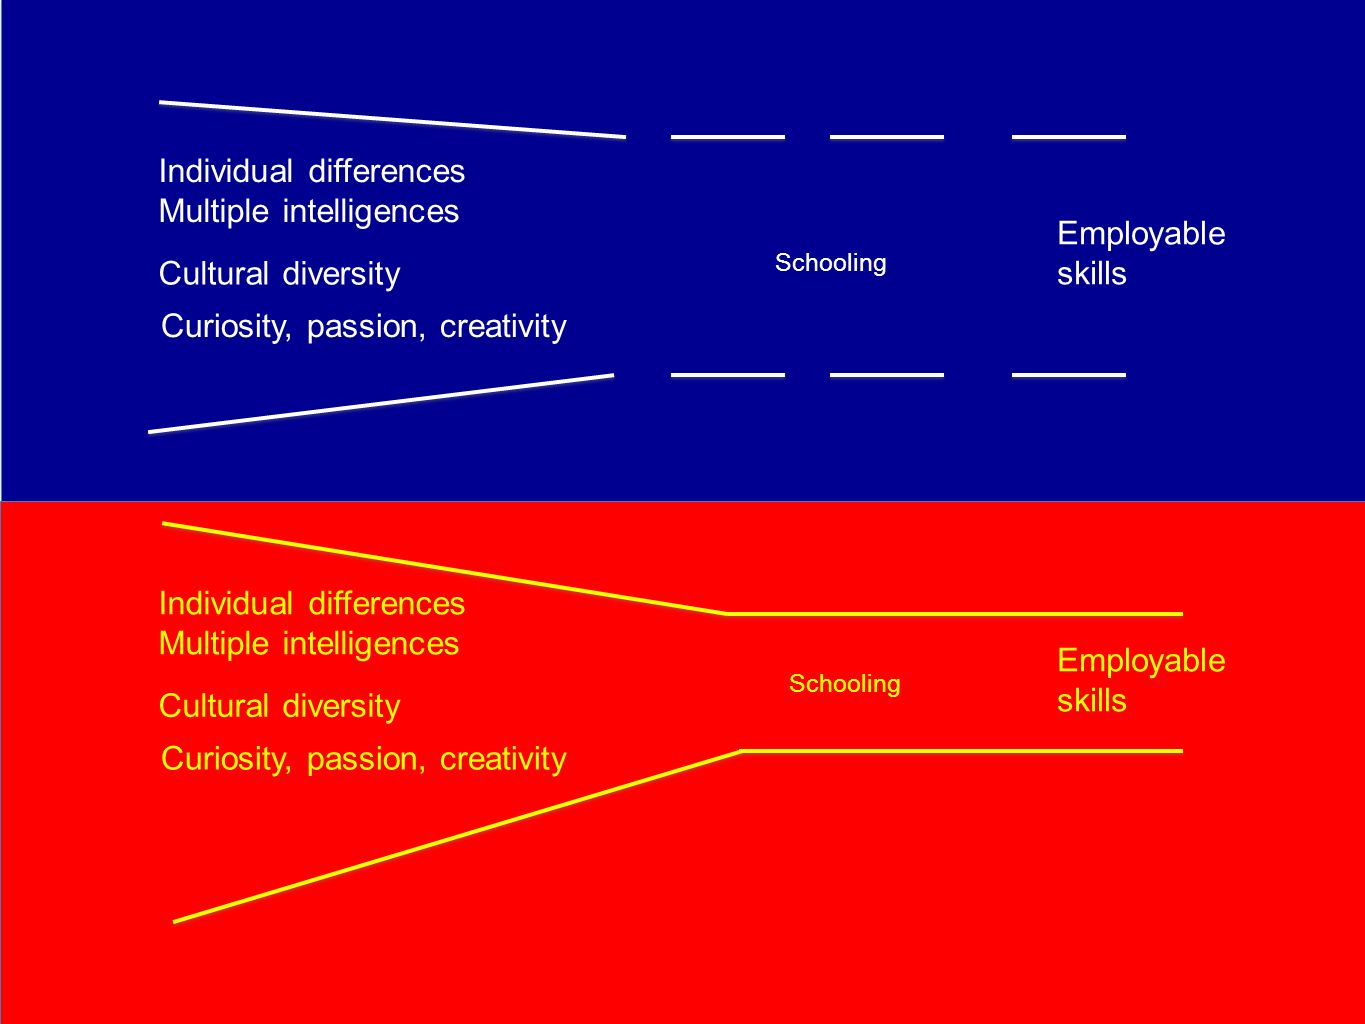 Schooling Individual differences Multiple intelligences Cultural diversity Curiosity, passion, creativity Employable skills Schooling Individual diffe